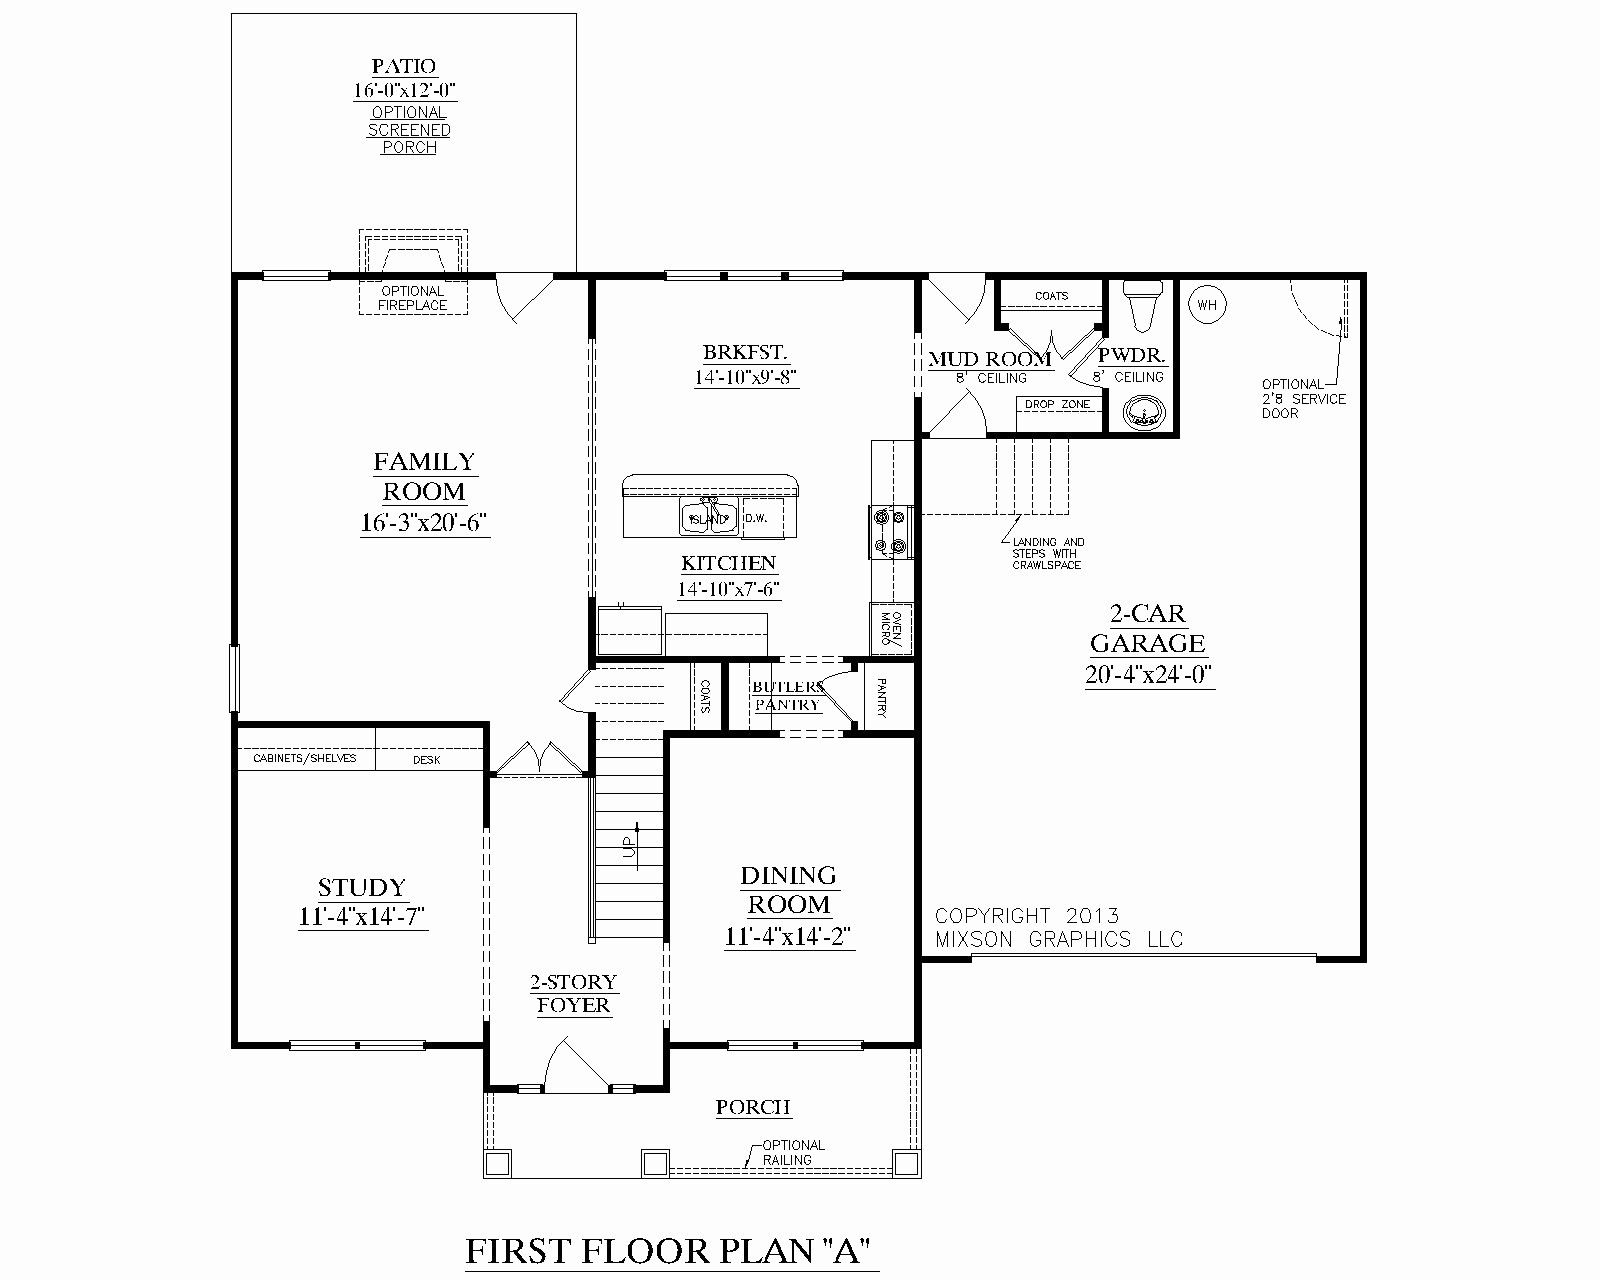 700 Sq Ft House Plans 2 Bedroom Indian Style How To Plan Foyer Decorating Simple House Plans